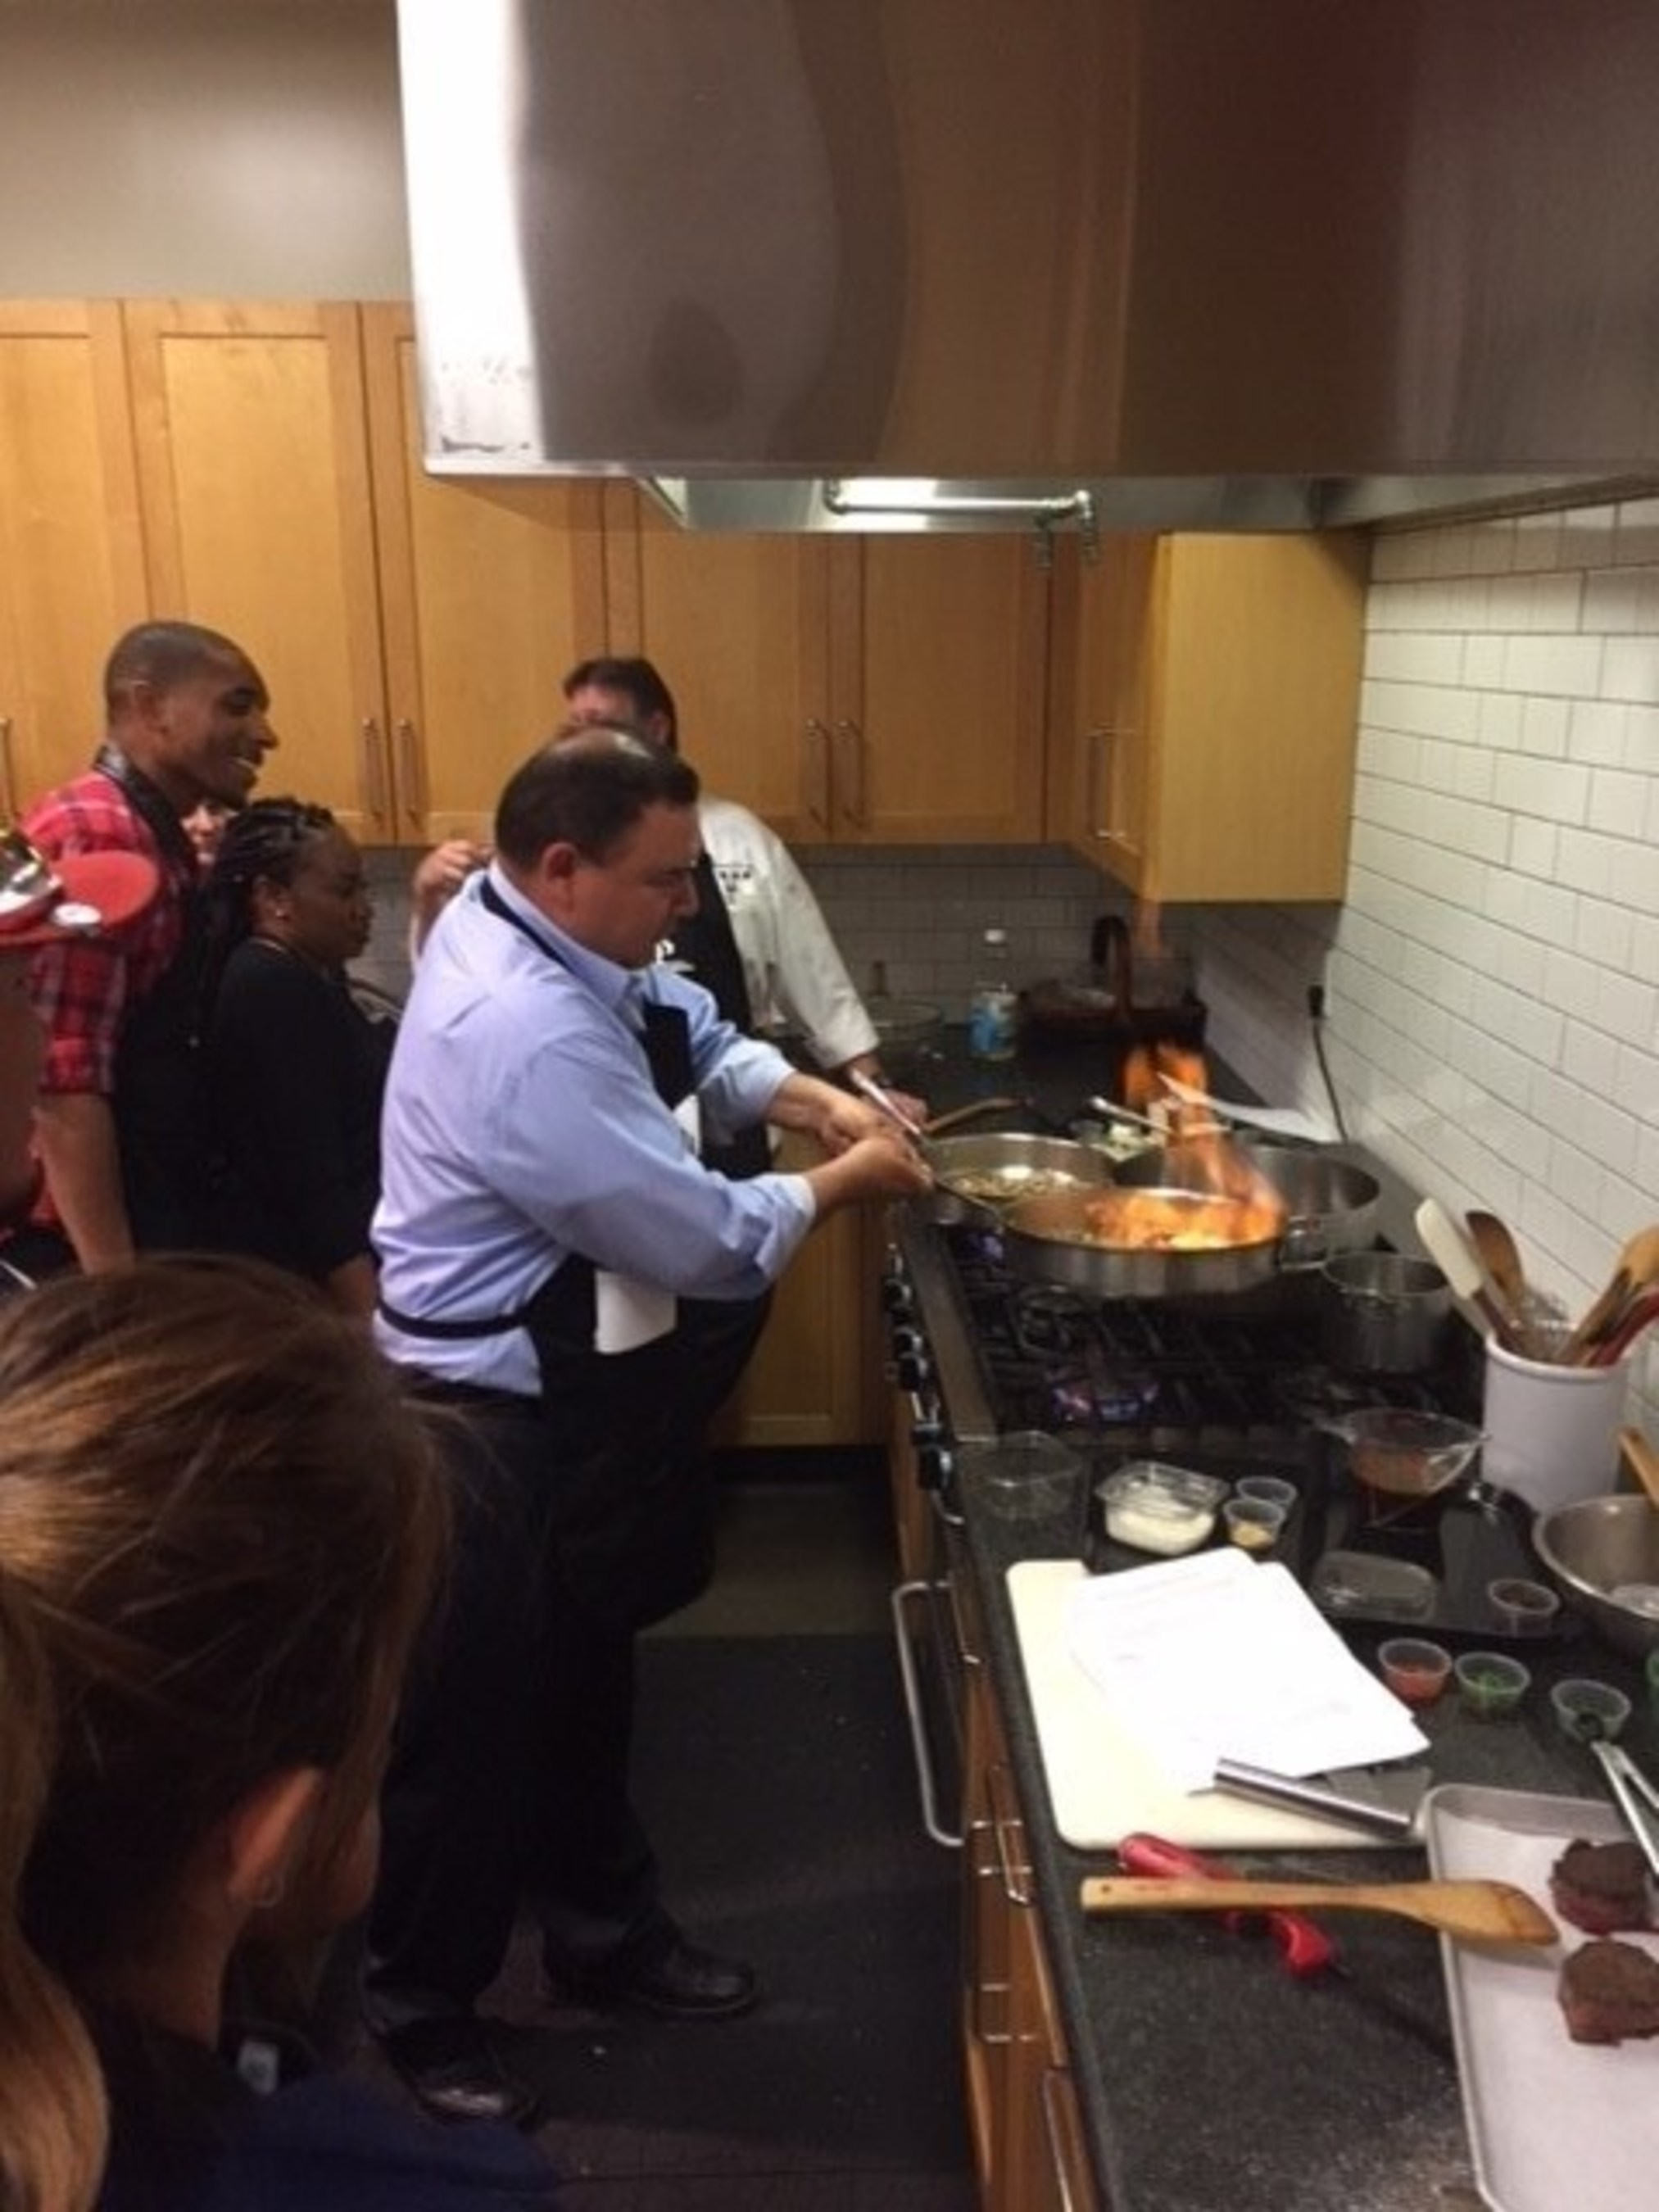 A unique cooking class brings wounded warriors together.